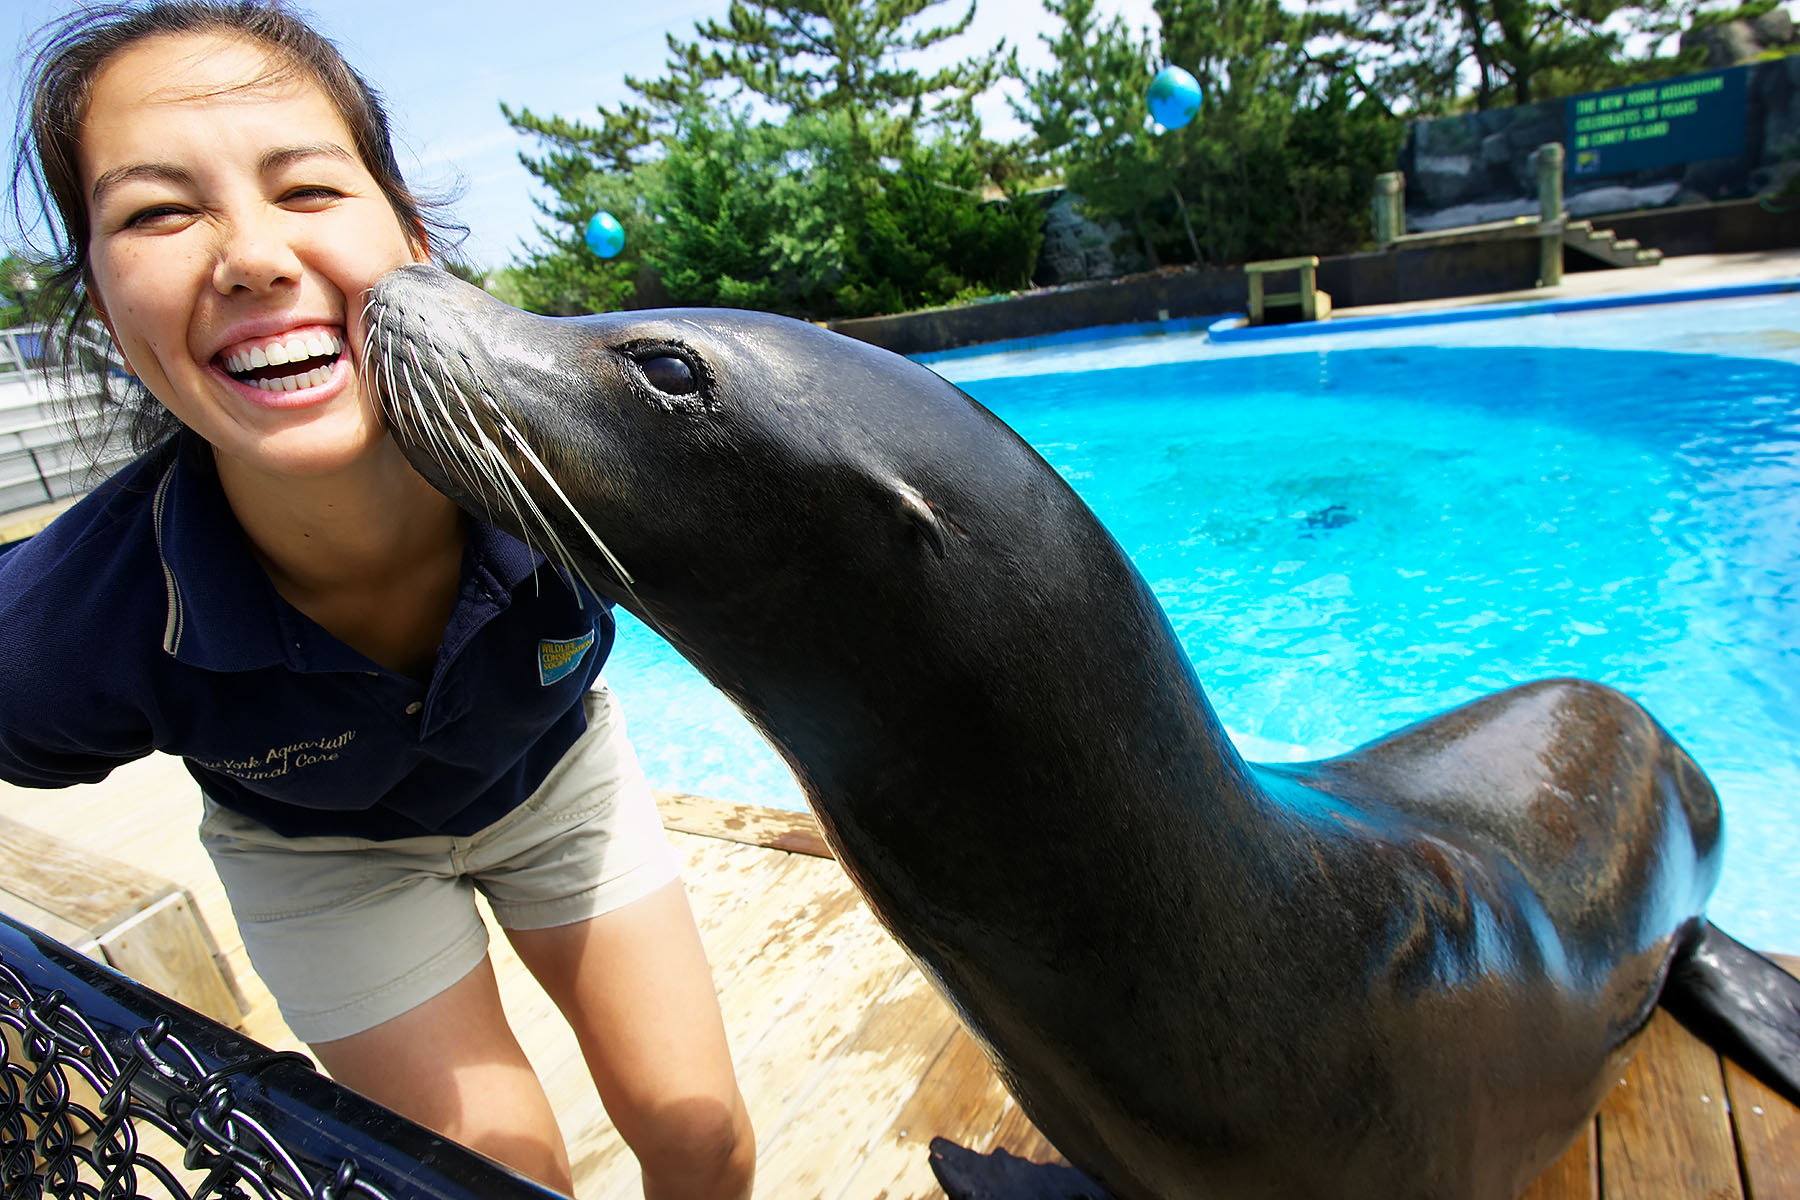 JDC 0387 Seal Kiss 07-041_126